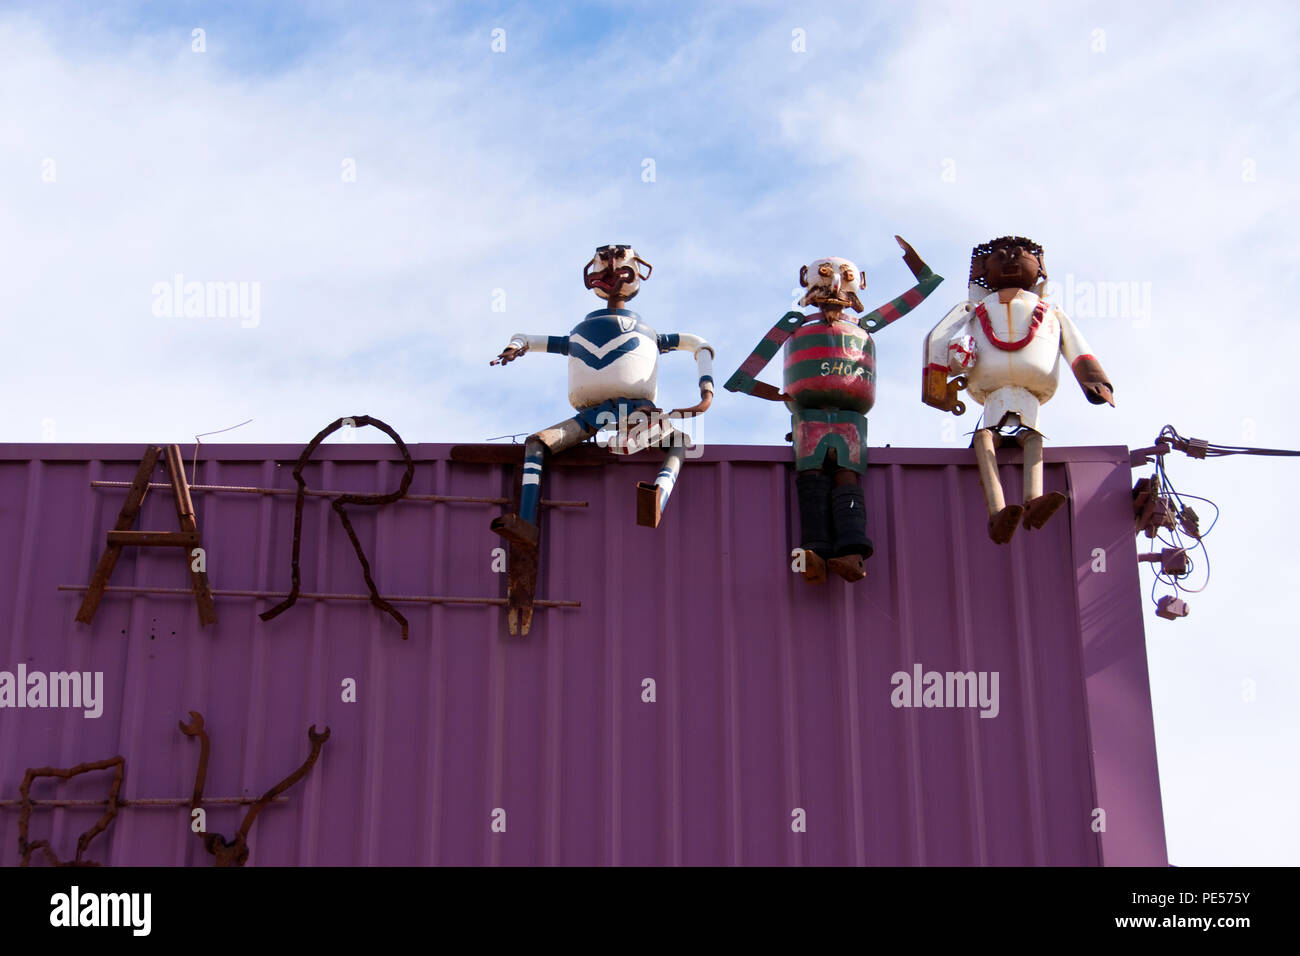 Sculptures made from recycled scrap metal on top of Wally's junk art gallery, in Rankins Springs, a town in New South Wales, Australia. - Stock Image